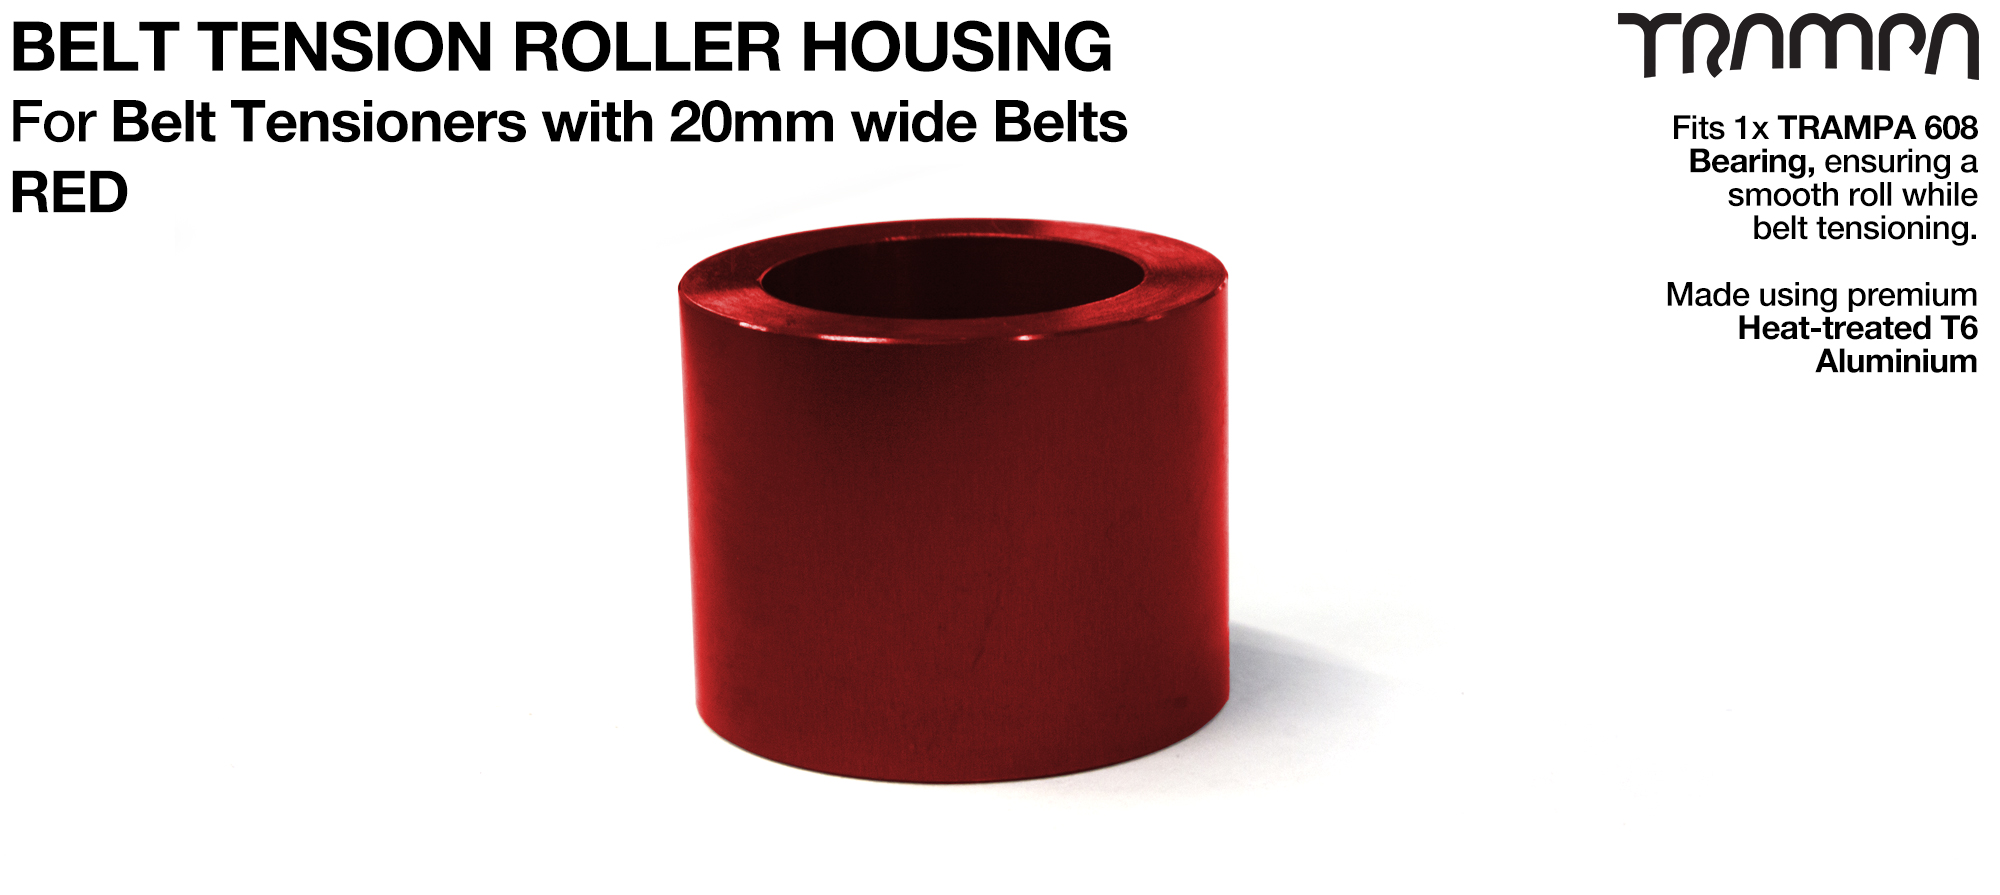 Belt Tension Roller Housing for 20mm Belts - RED